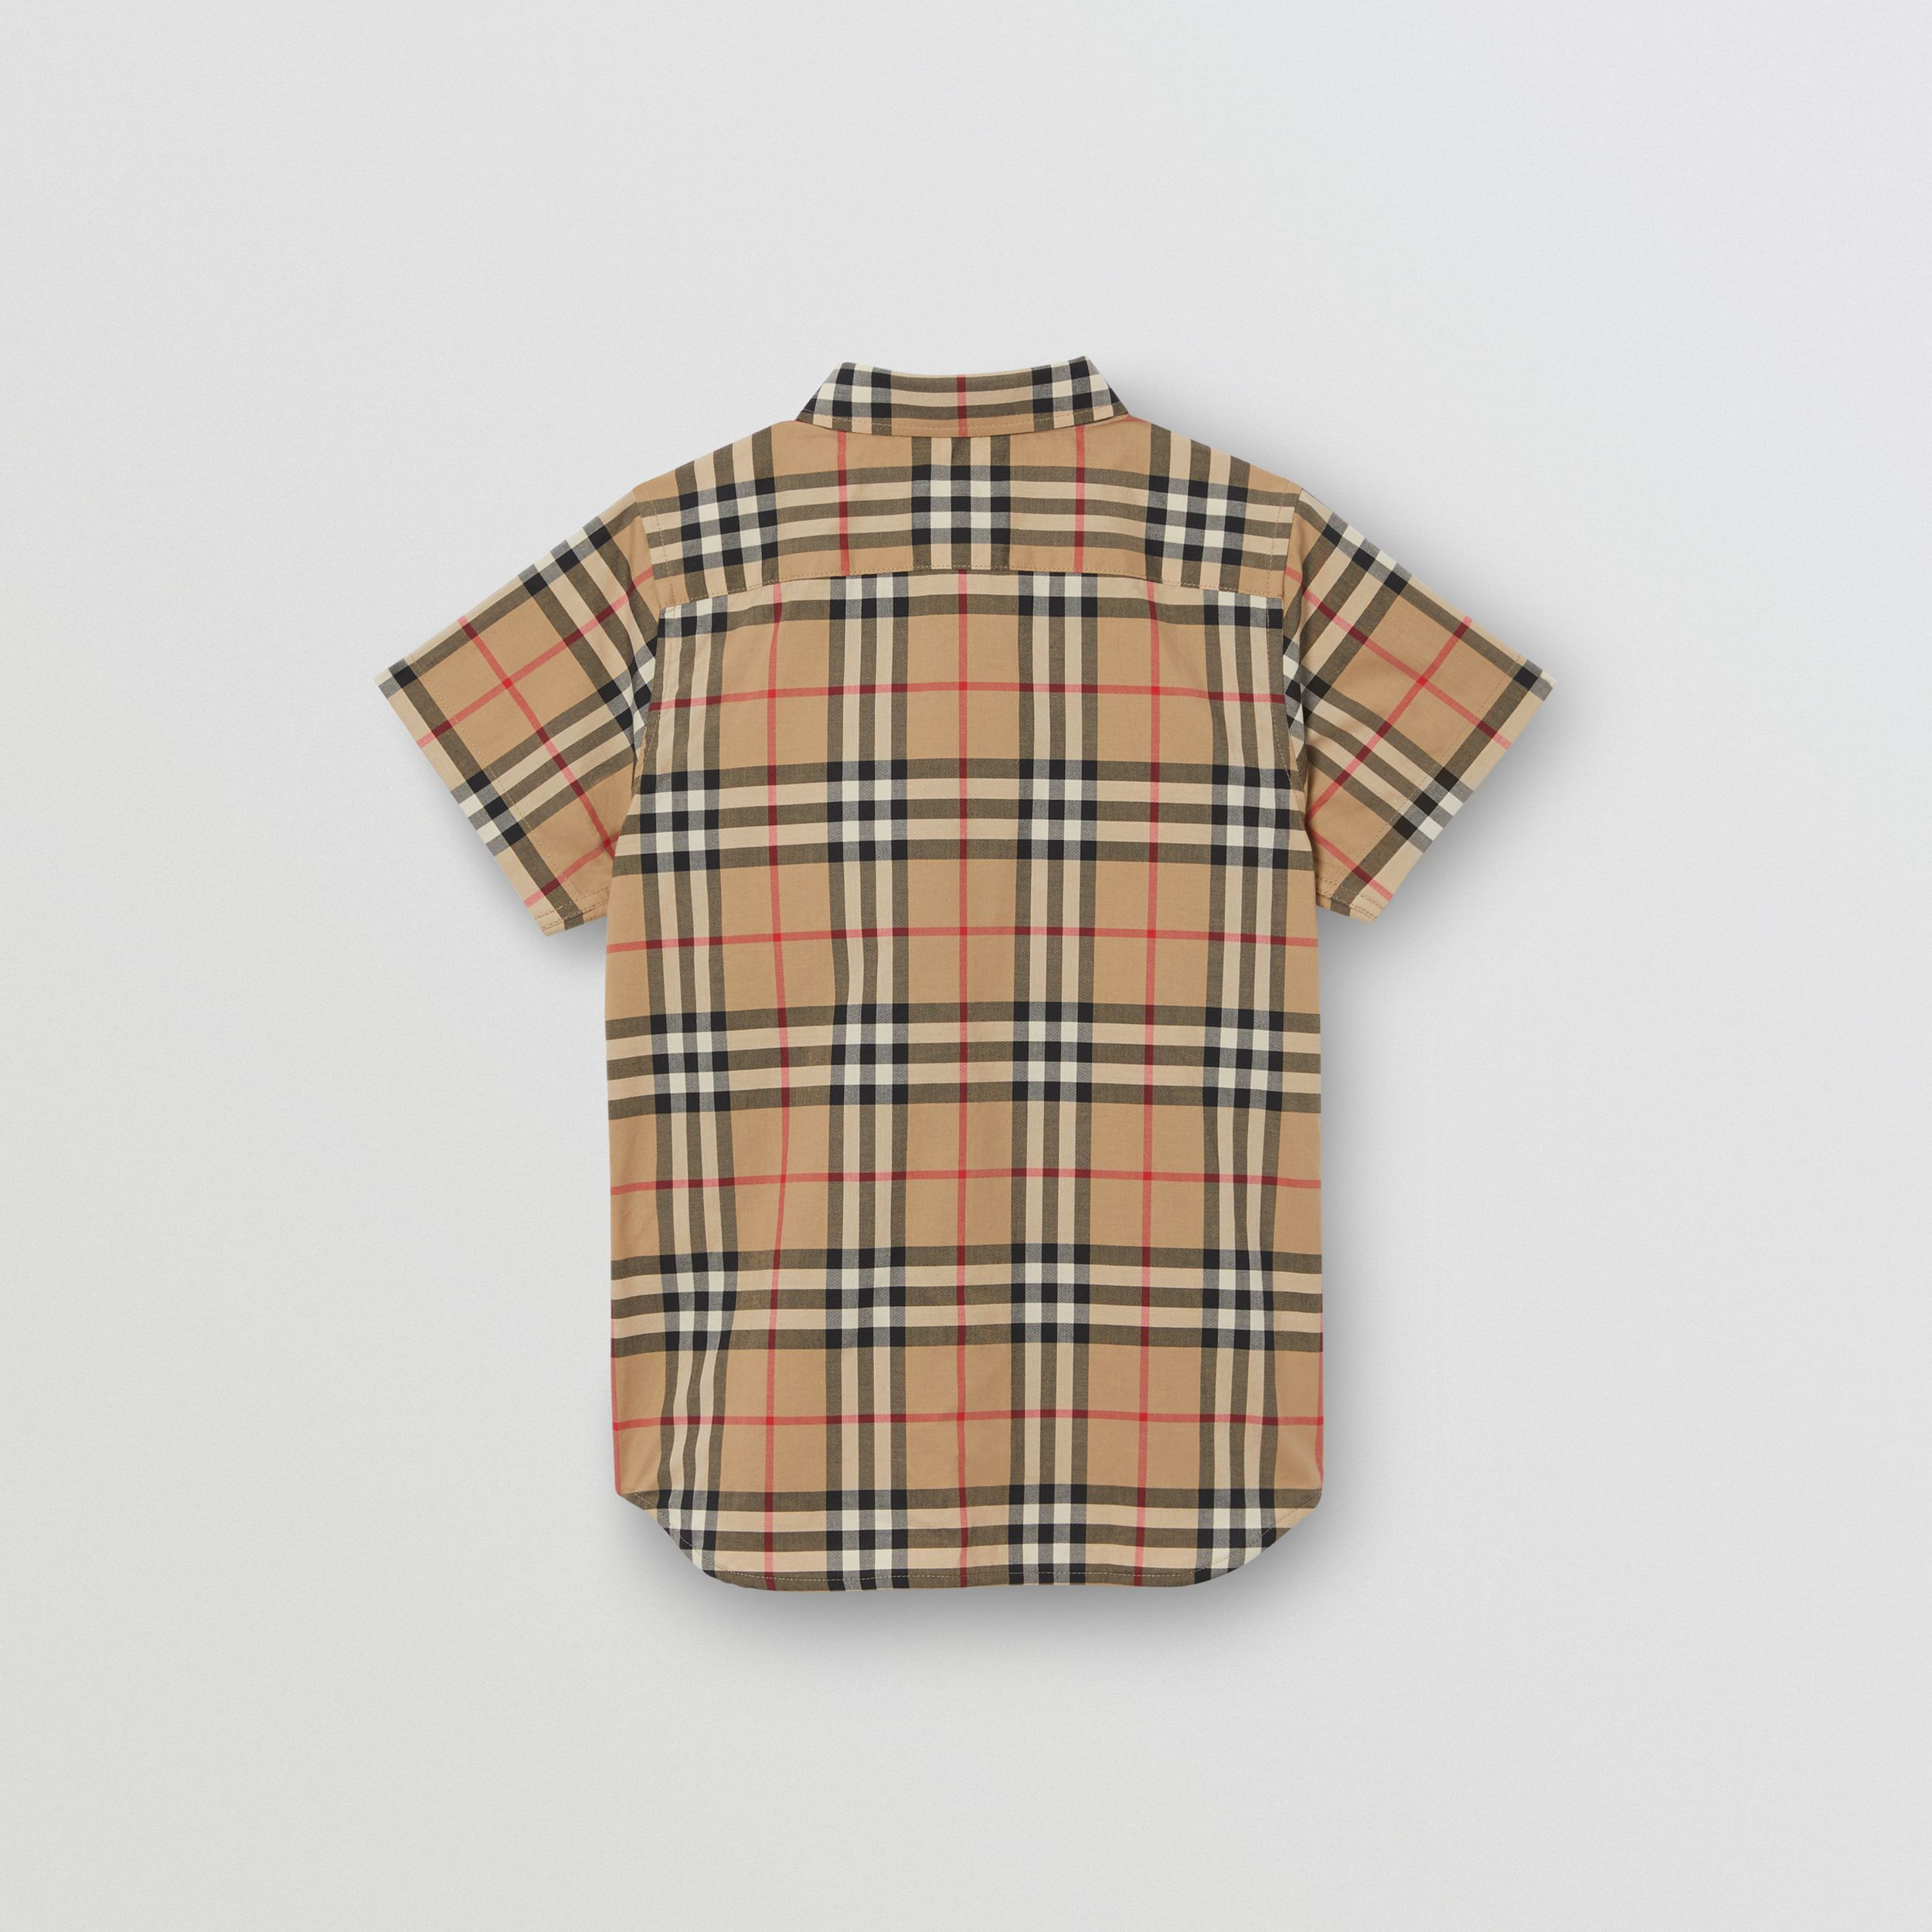 Short-sleeve Vintage Check Cotton Shirt in Archive Beige | Burberry Australia - 4